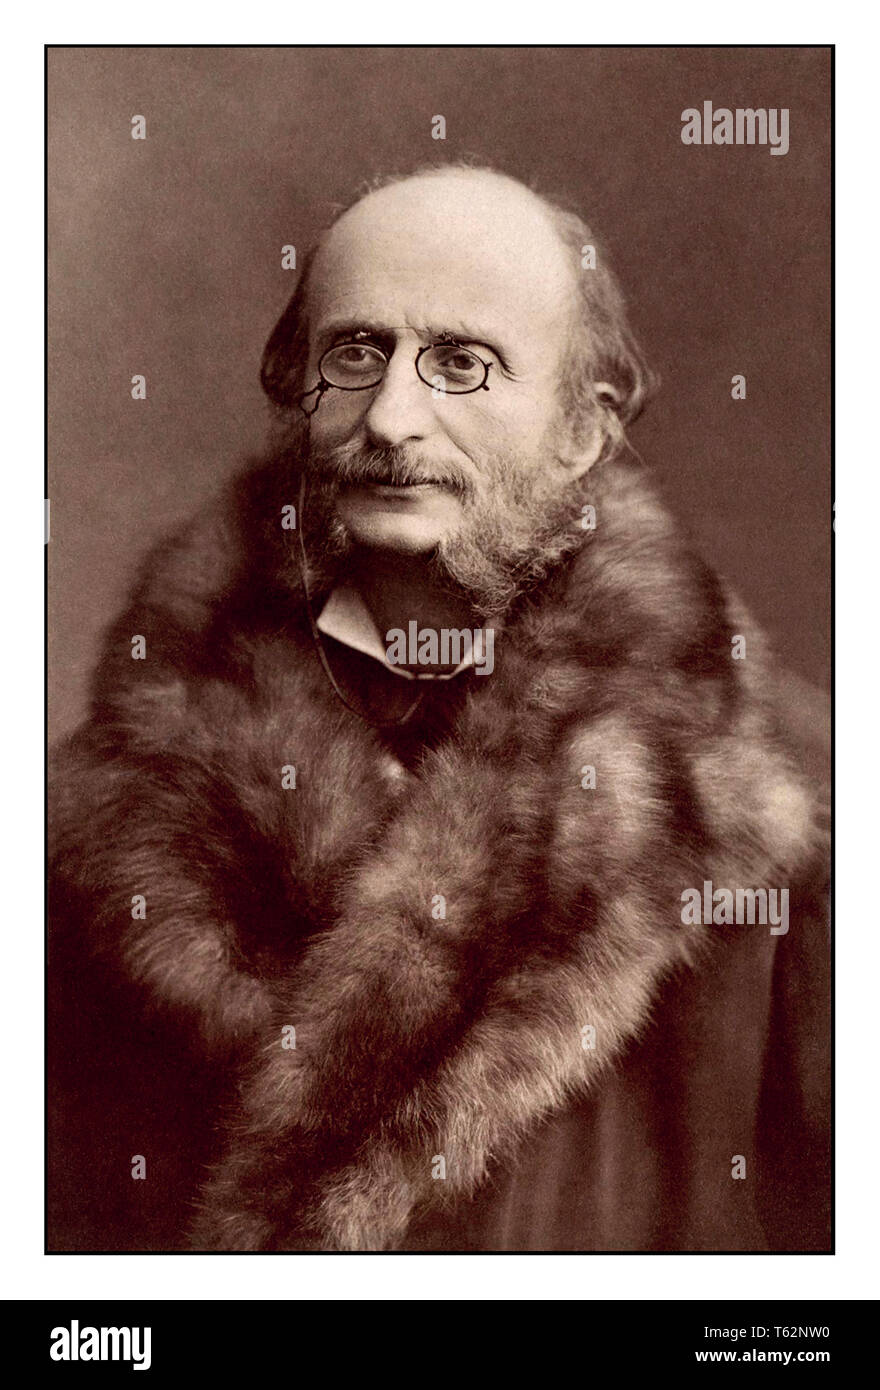 Jacques Offenbach Vintage Portrait music composer photographed by celebrated French Photographer Nadar 1860's Jacques Offenbach was a German-French composer, cellist and impresario of the romantic period. He is remembered for his nearly 100 operettas of the 1850s–1870s and his uncompleted opera The Tales of Hoffmann. - Stock Image